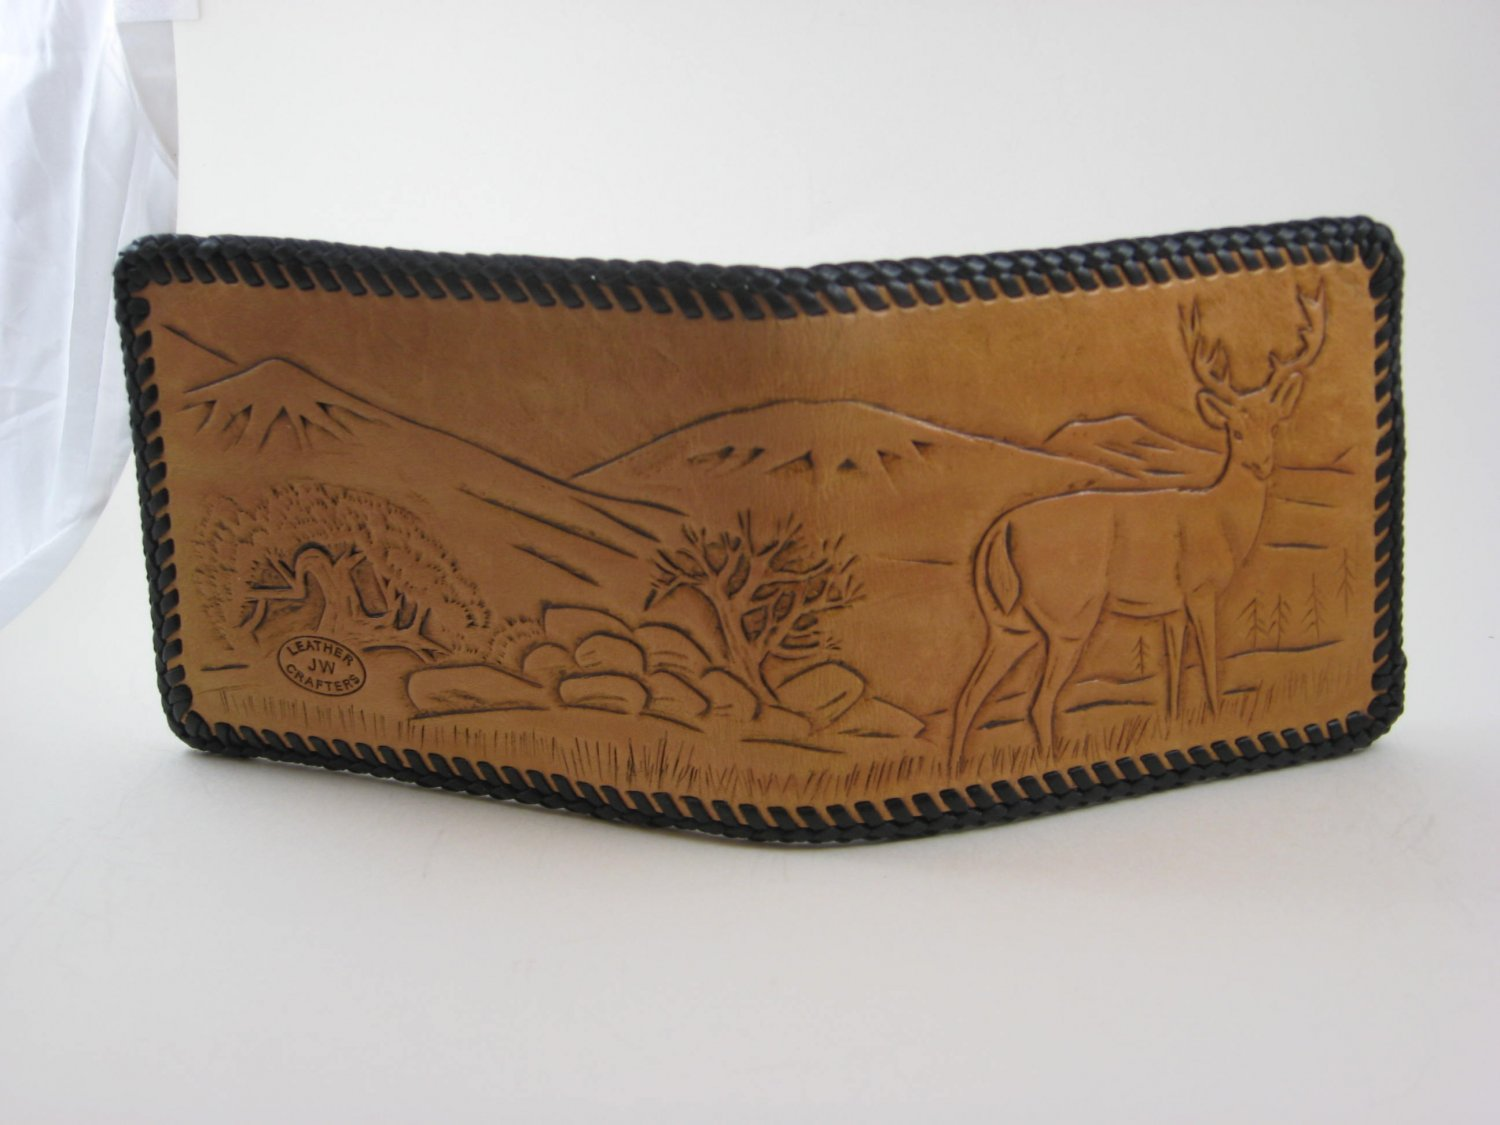 Men's Deluxe Wallet, Chestnut Tan, Black Lacing, Handtooled Leather, Deer Scene W0009